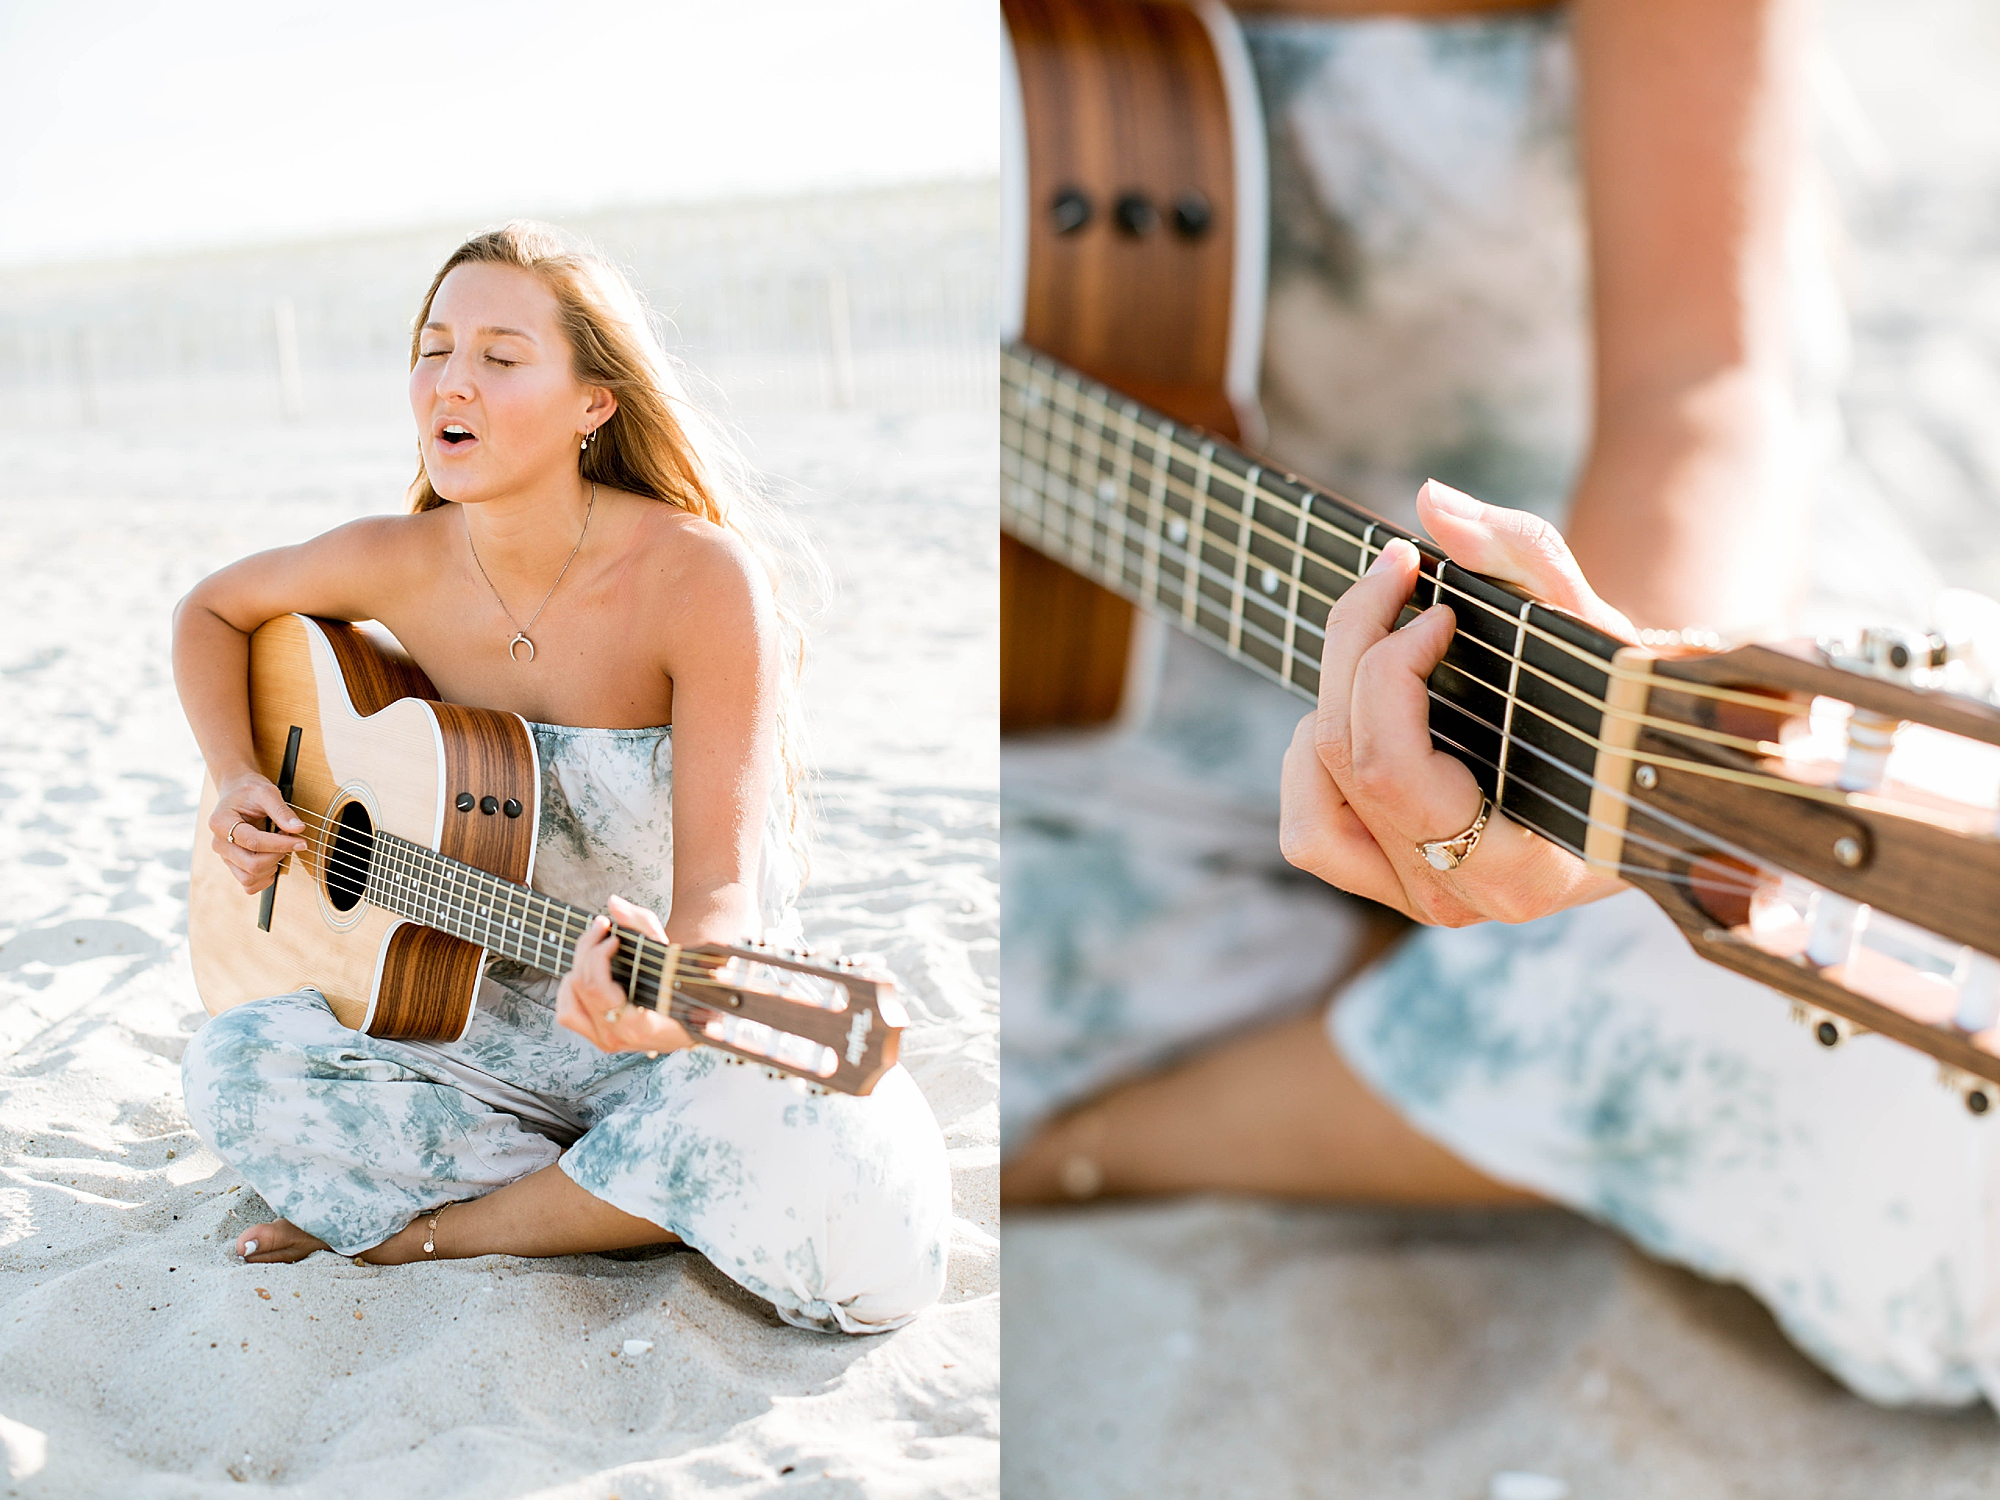 Natural and Bright Seaside Park New Jersey Boho Lifestlyle Beach Portrait Photography by Kelee Bovelle_0002.jpg